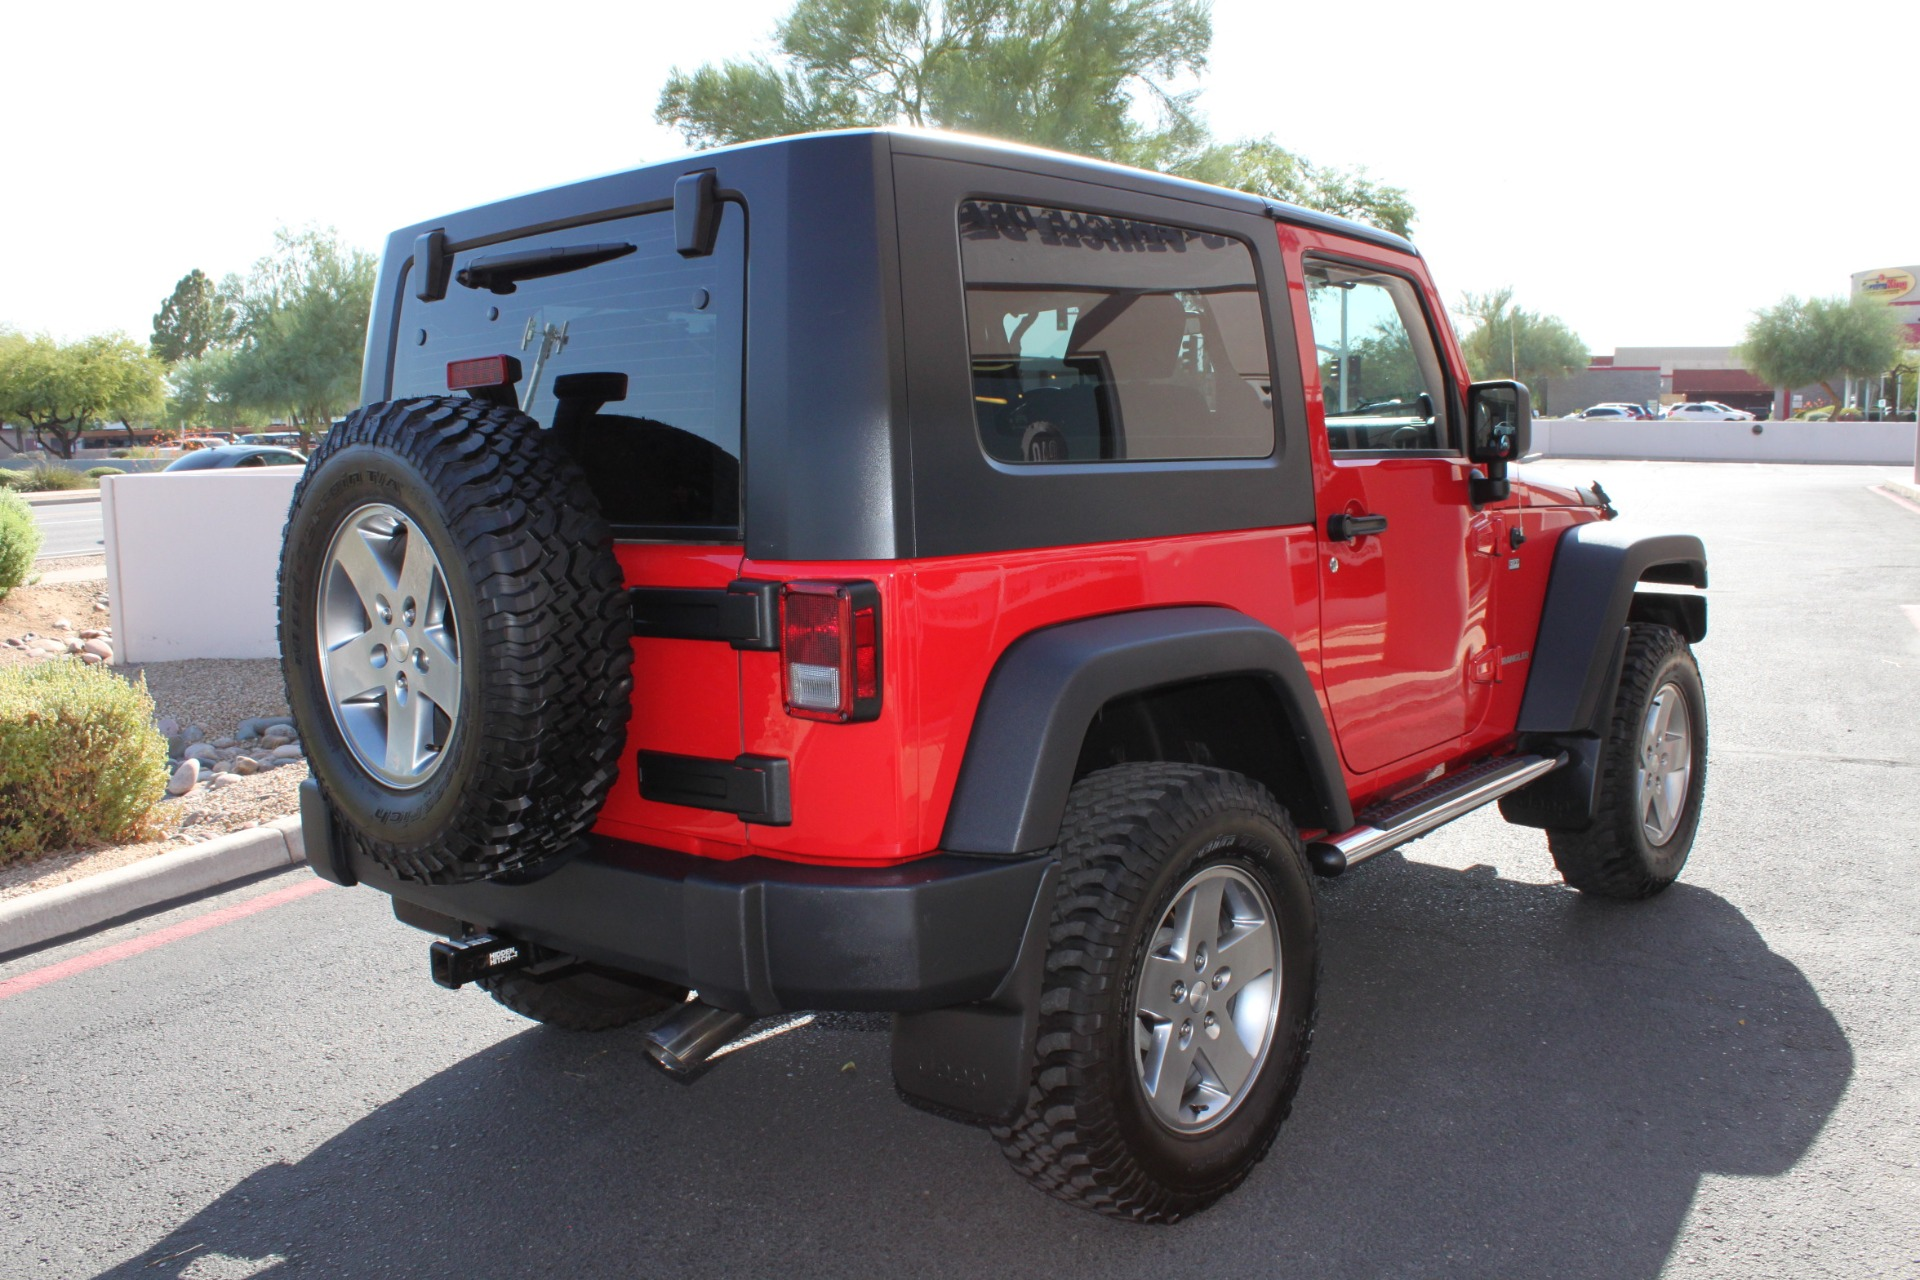 Used-2007-Jeep-Wrangler-X-Ripp-Supercharged-Chrysler